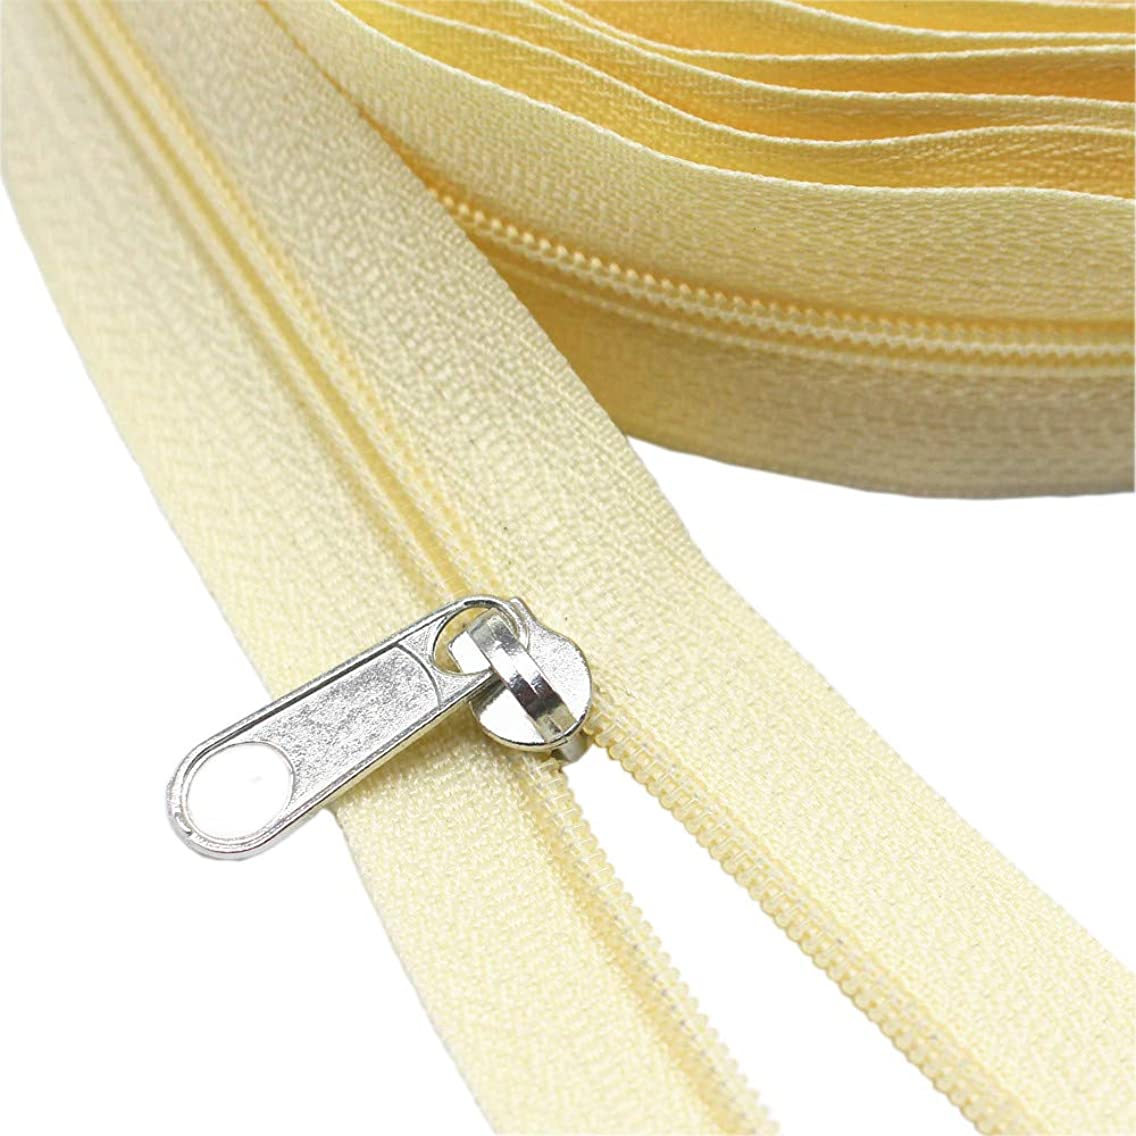 Meillia Beige Nylon Coil Zippers by The Yard Bulk 10 Yards + 25PCS Silver Pulls for Sewing, Bags, Crafts, Decorating (Beige Colour)